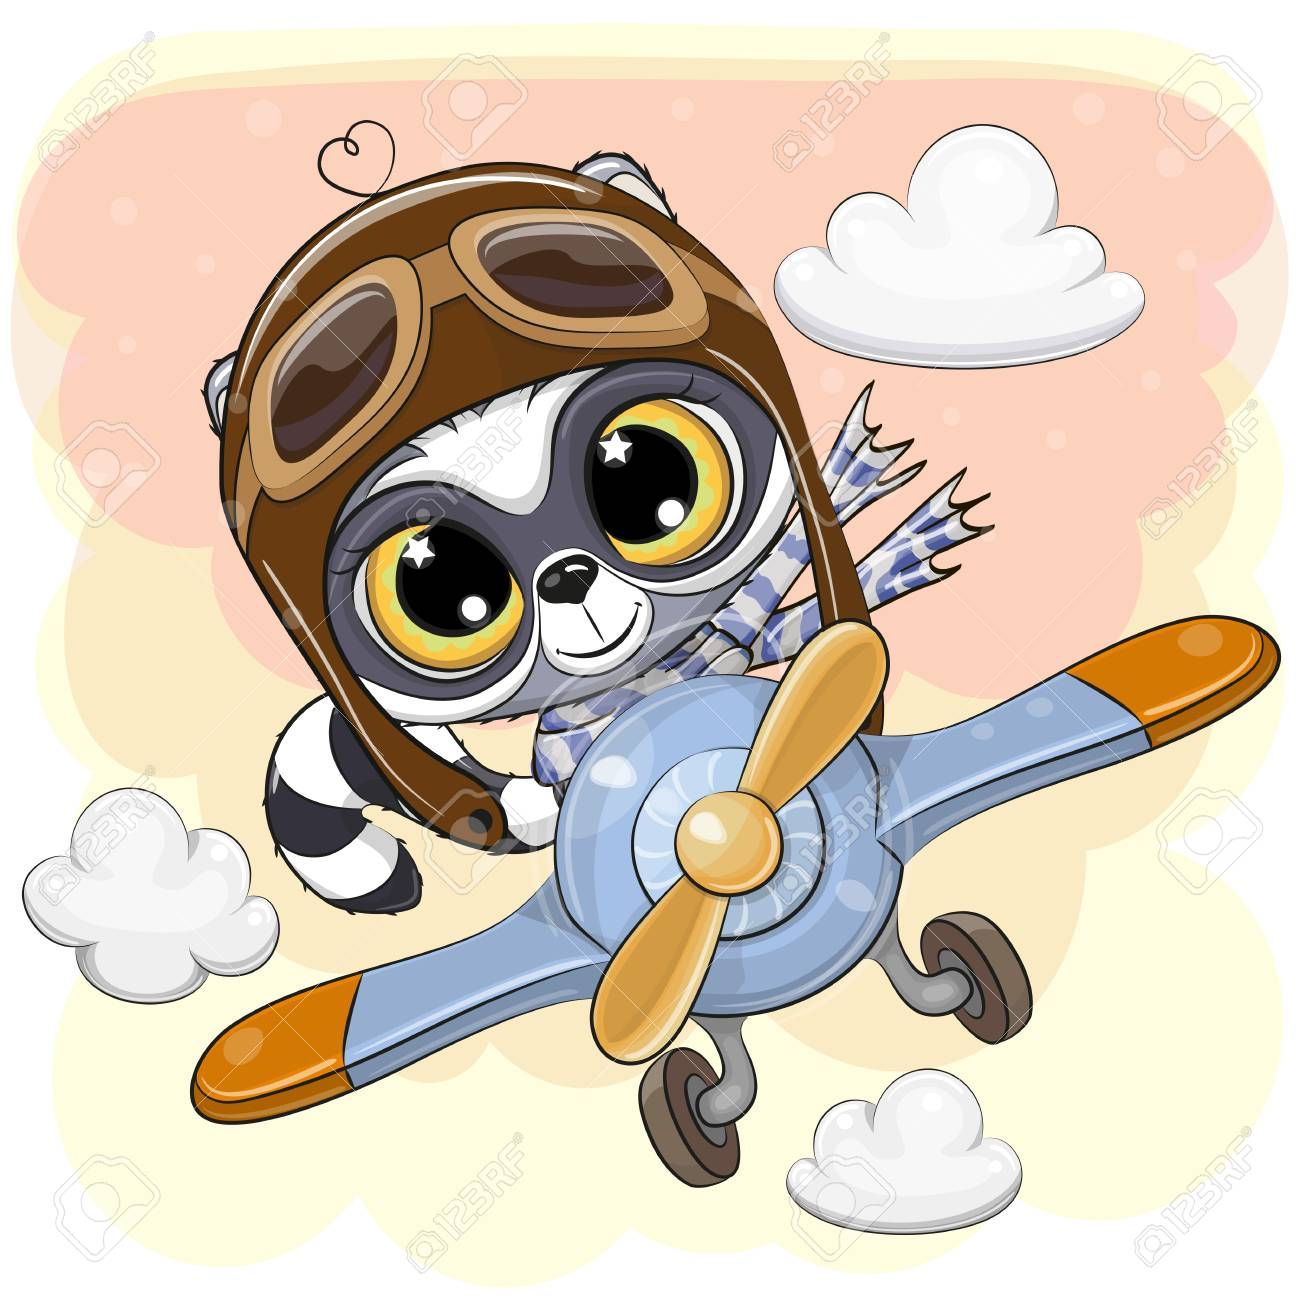 cute animated airplane clipart